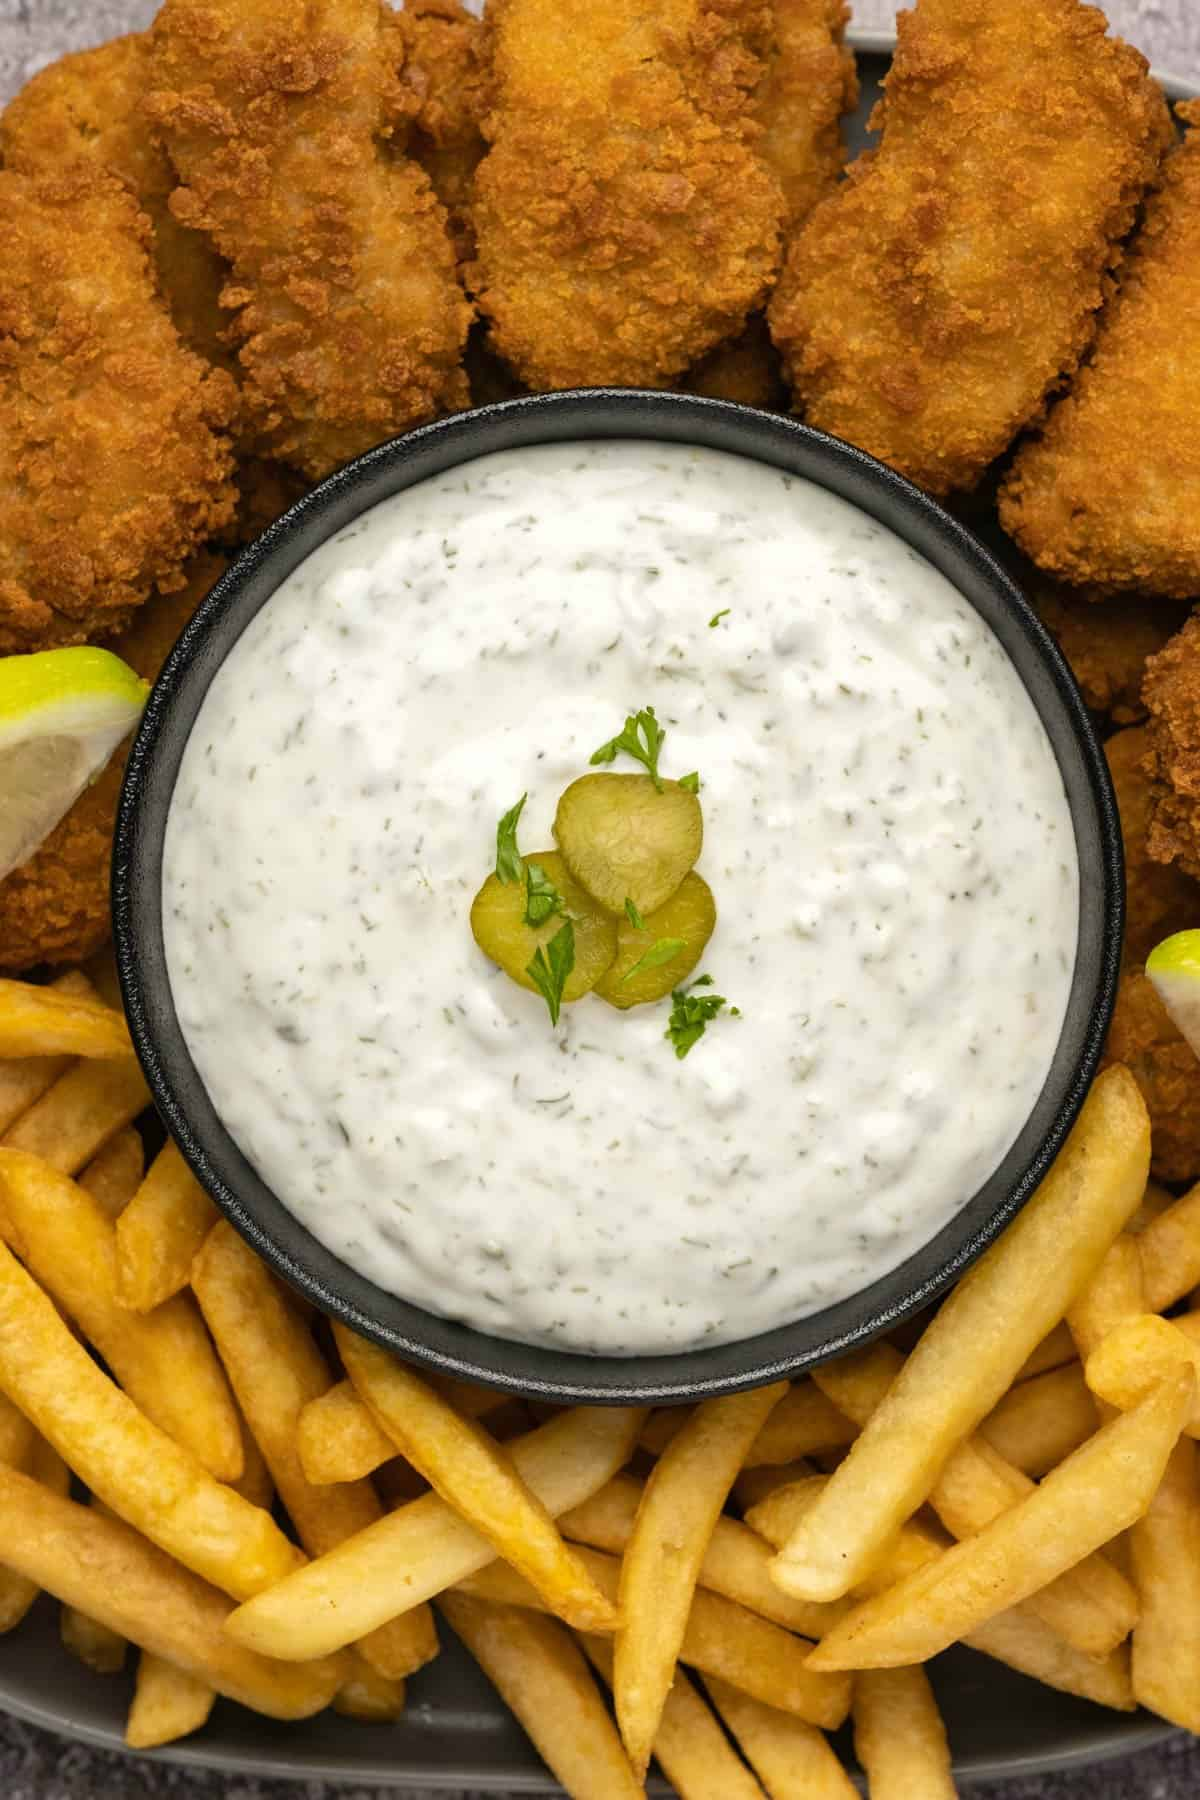 Tartar sauce topped with sliced pickles in a black bowl.